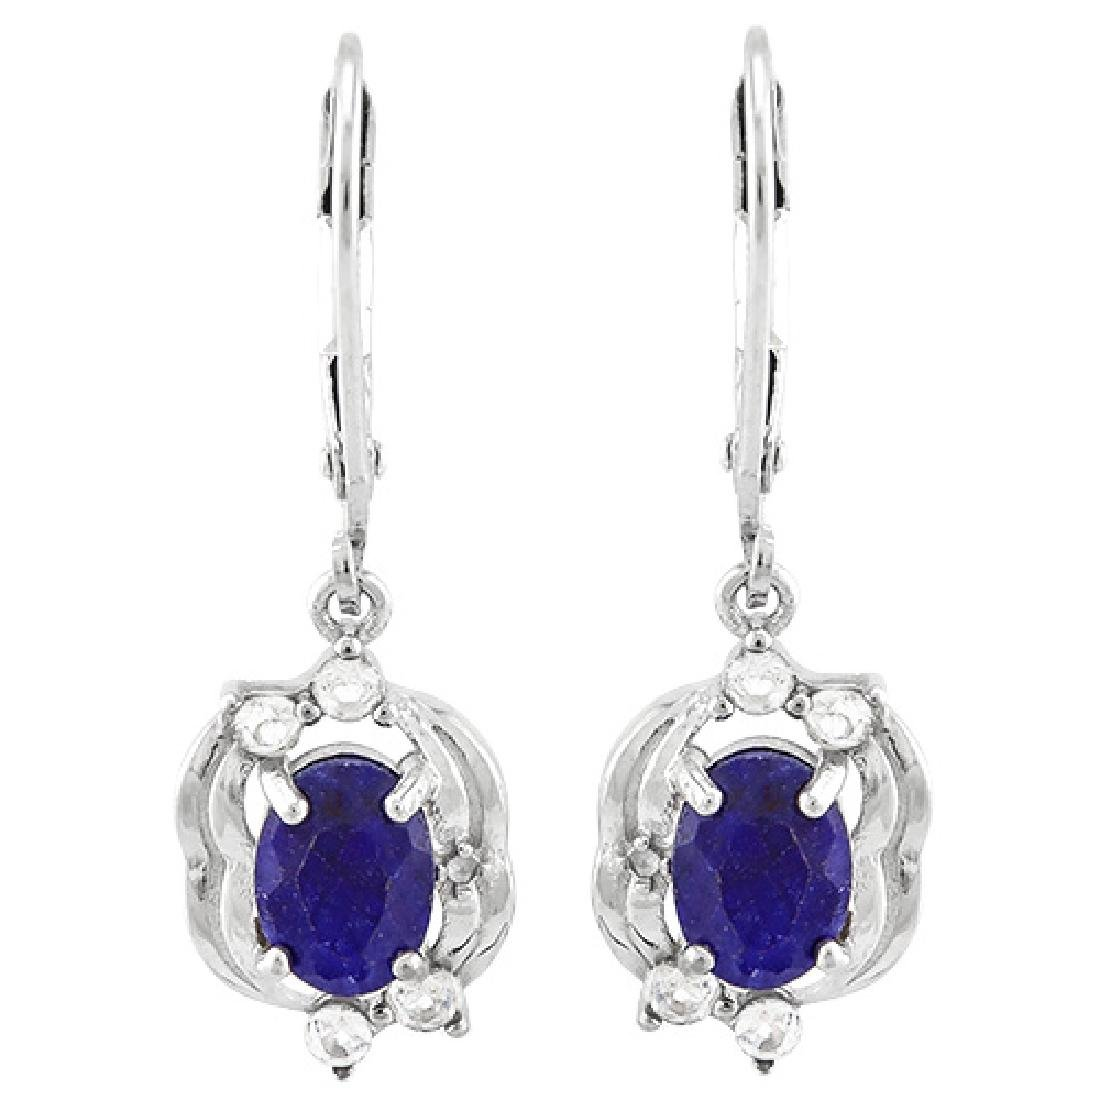 ANTIQUE STYLE SAPPHIRE DANGLE STERLING EARRINGS